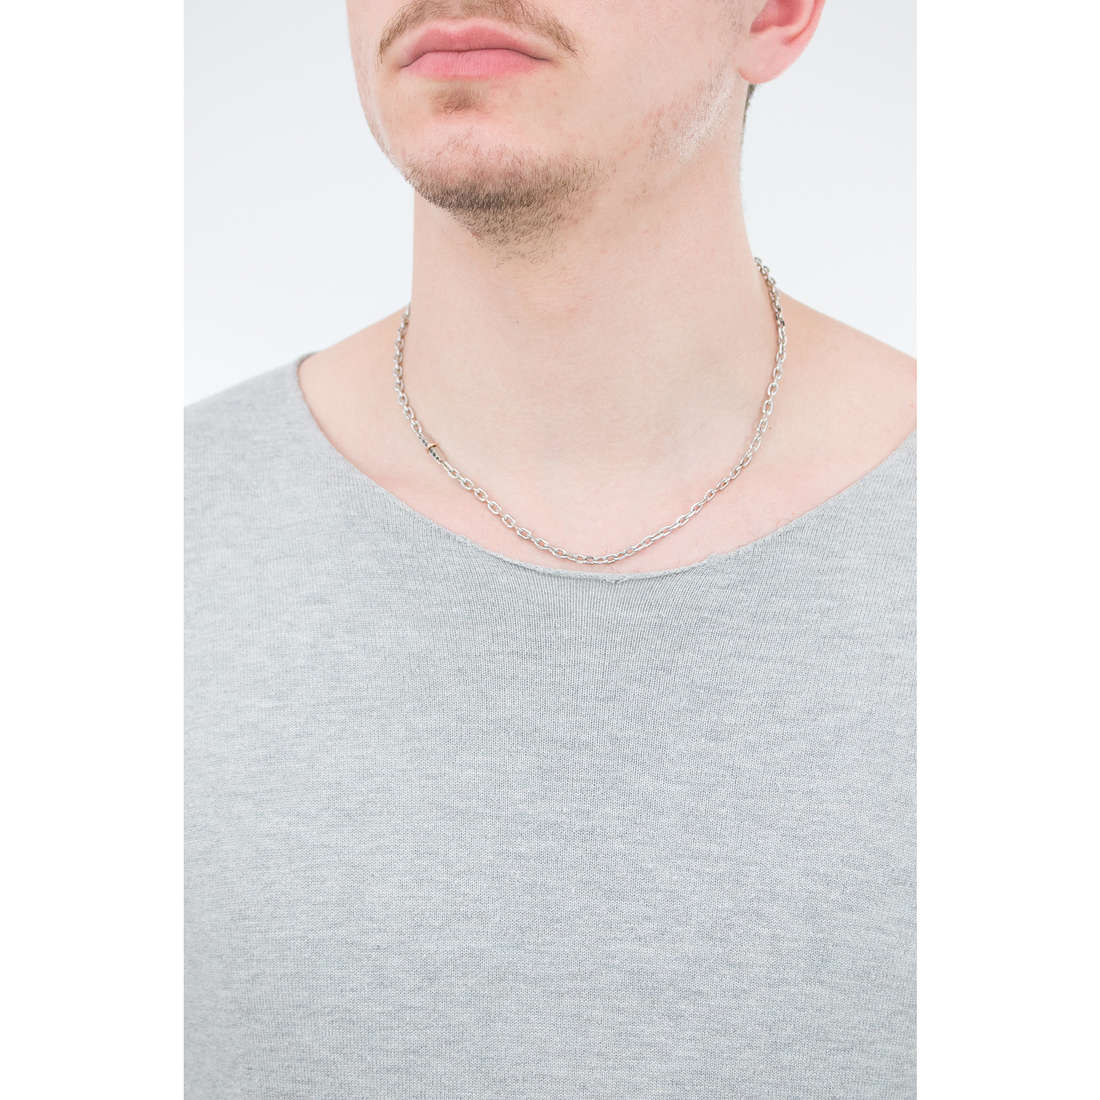 Luca Barra necklaces man LBCL168 photo wearing